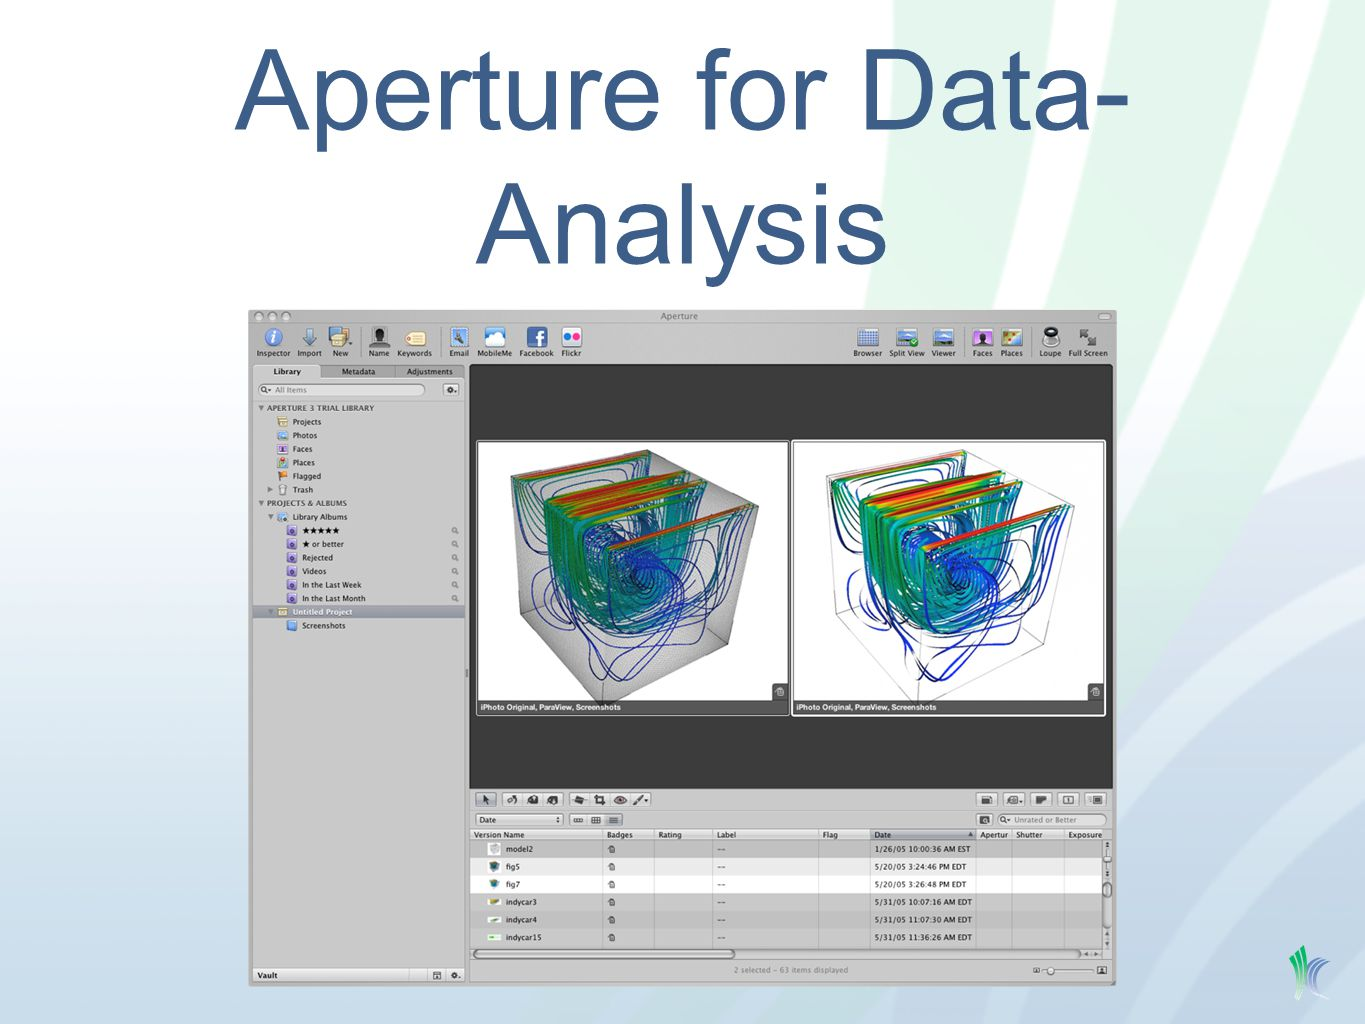 Aperture for Data- Analysis